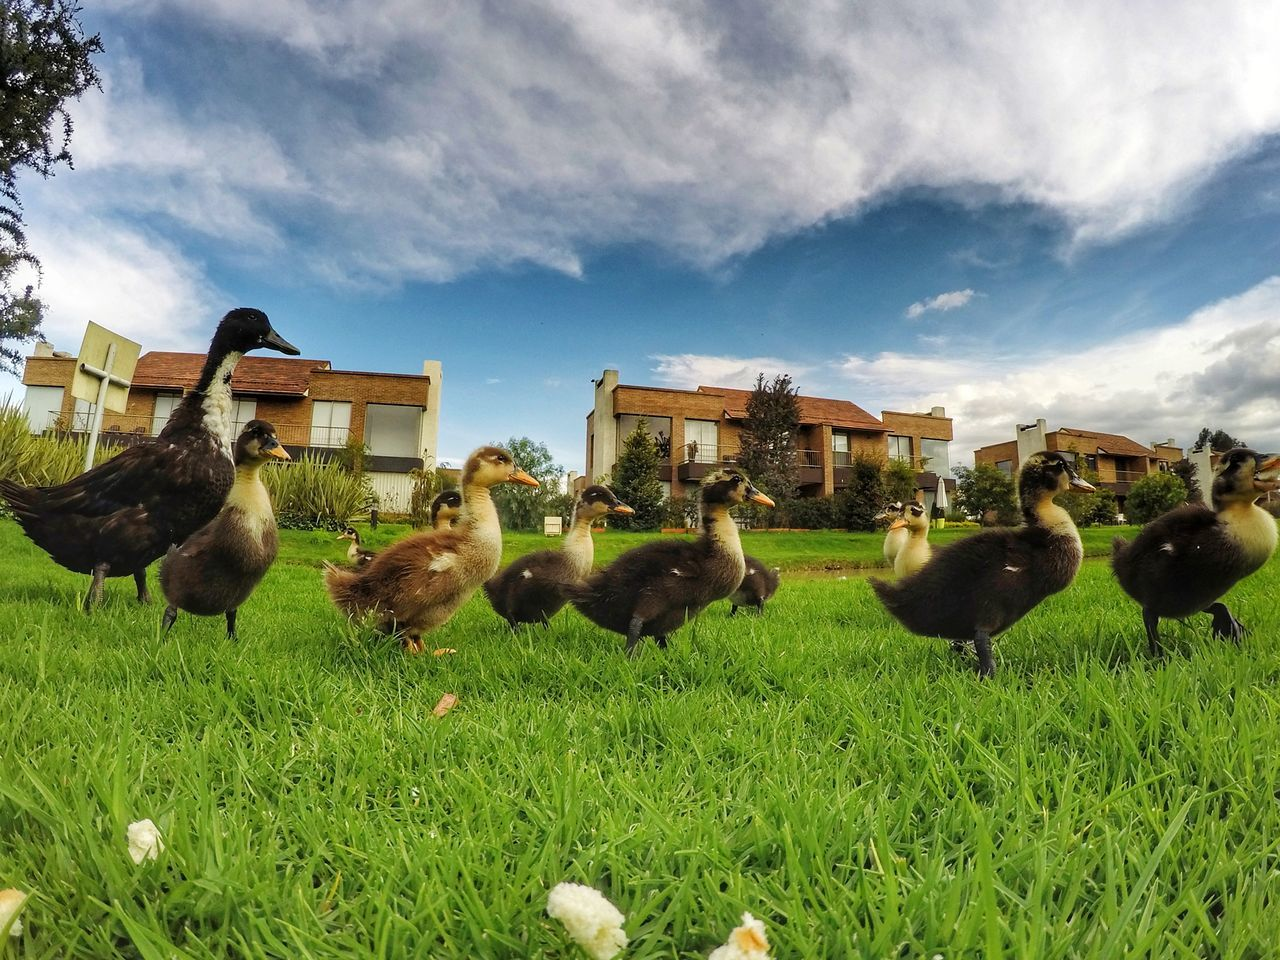 grass, sky, animal themes, field, bird, outdoors, nature, cloud - sky, day, large group of animals, building exterior, architecture, no people, animals in the wild